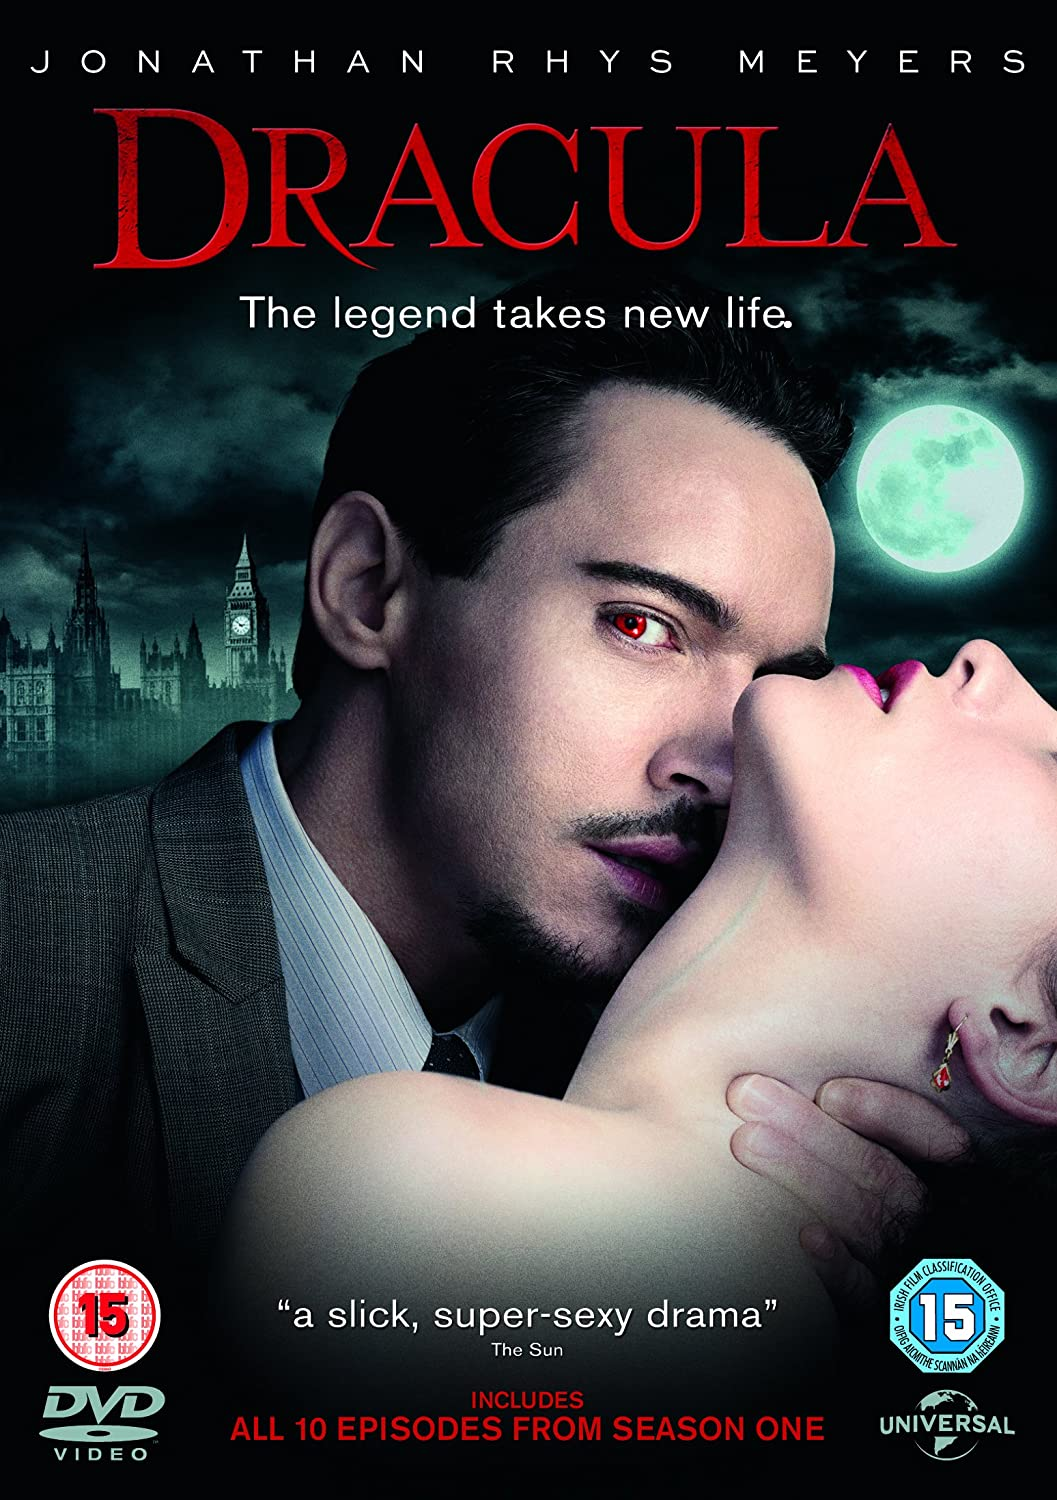 Amazon.com: Dracula - Season 1 [DVD] [2013]: Movies & TV